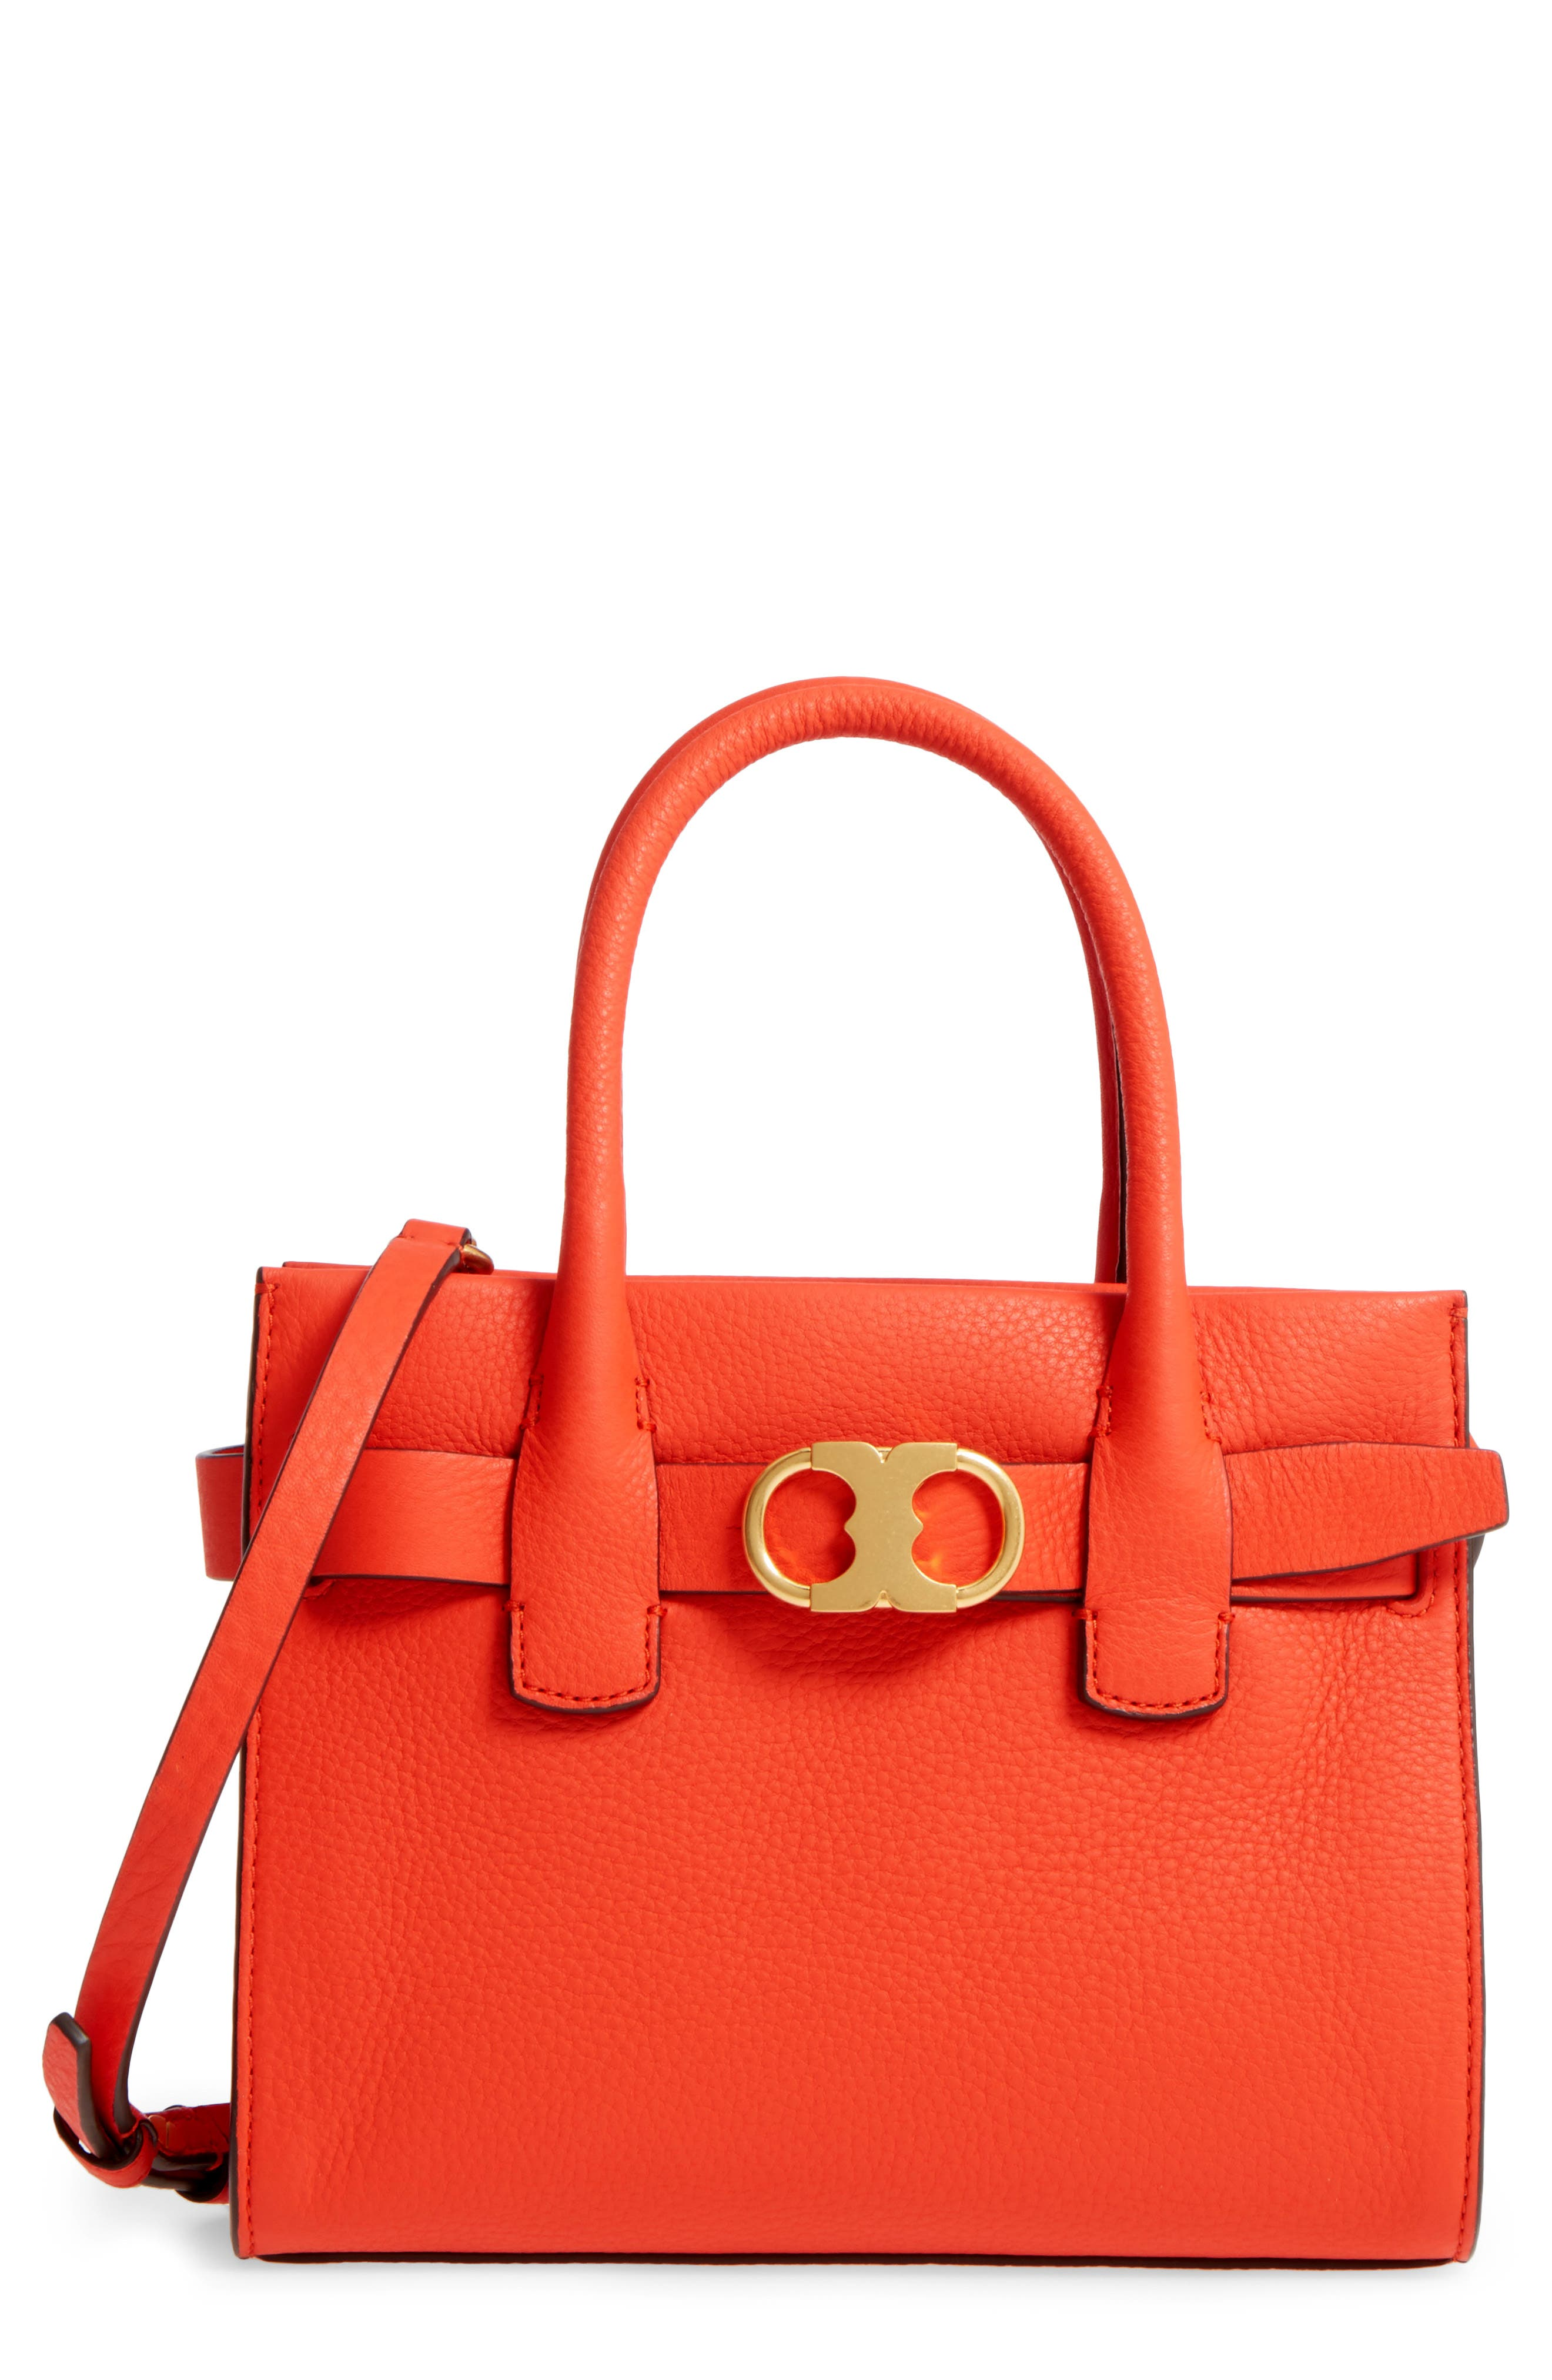 Tory Burch Small Gemini Link Leather Tote